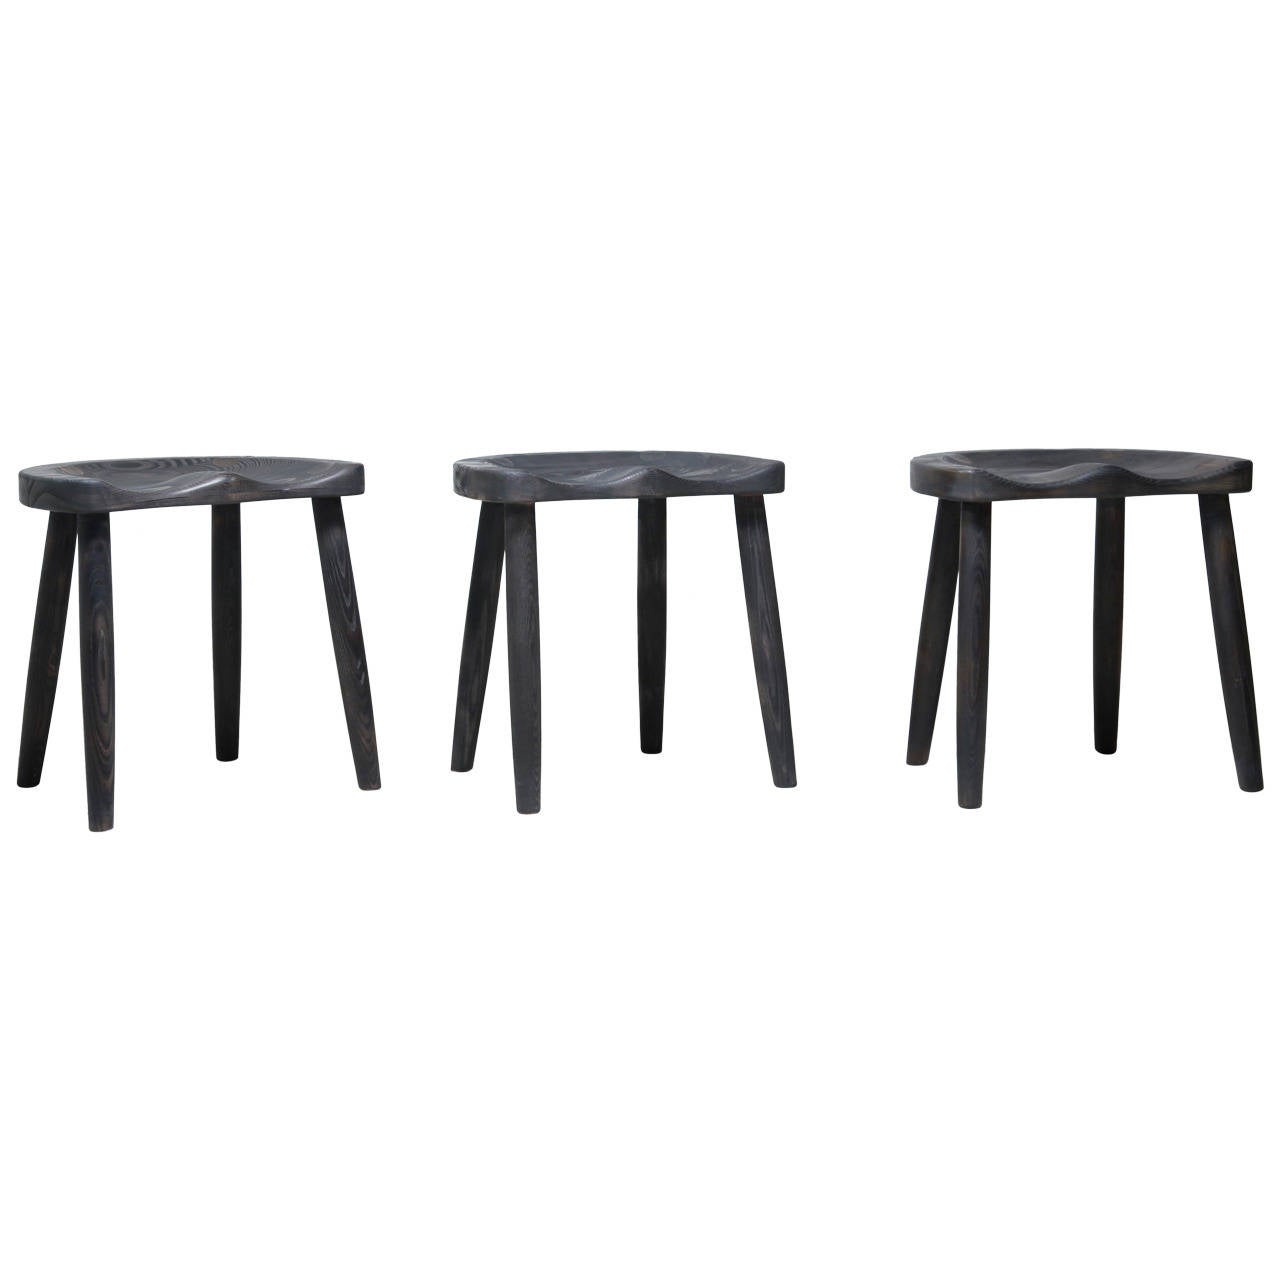 Studio Stools in Blackened Wood by Robert Roakes, USA